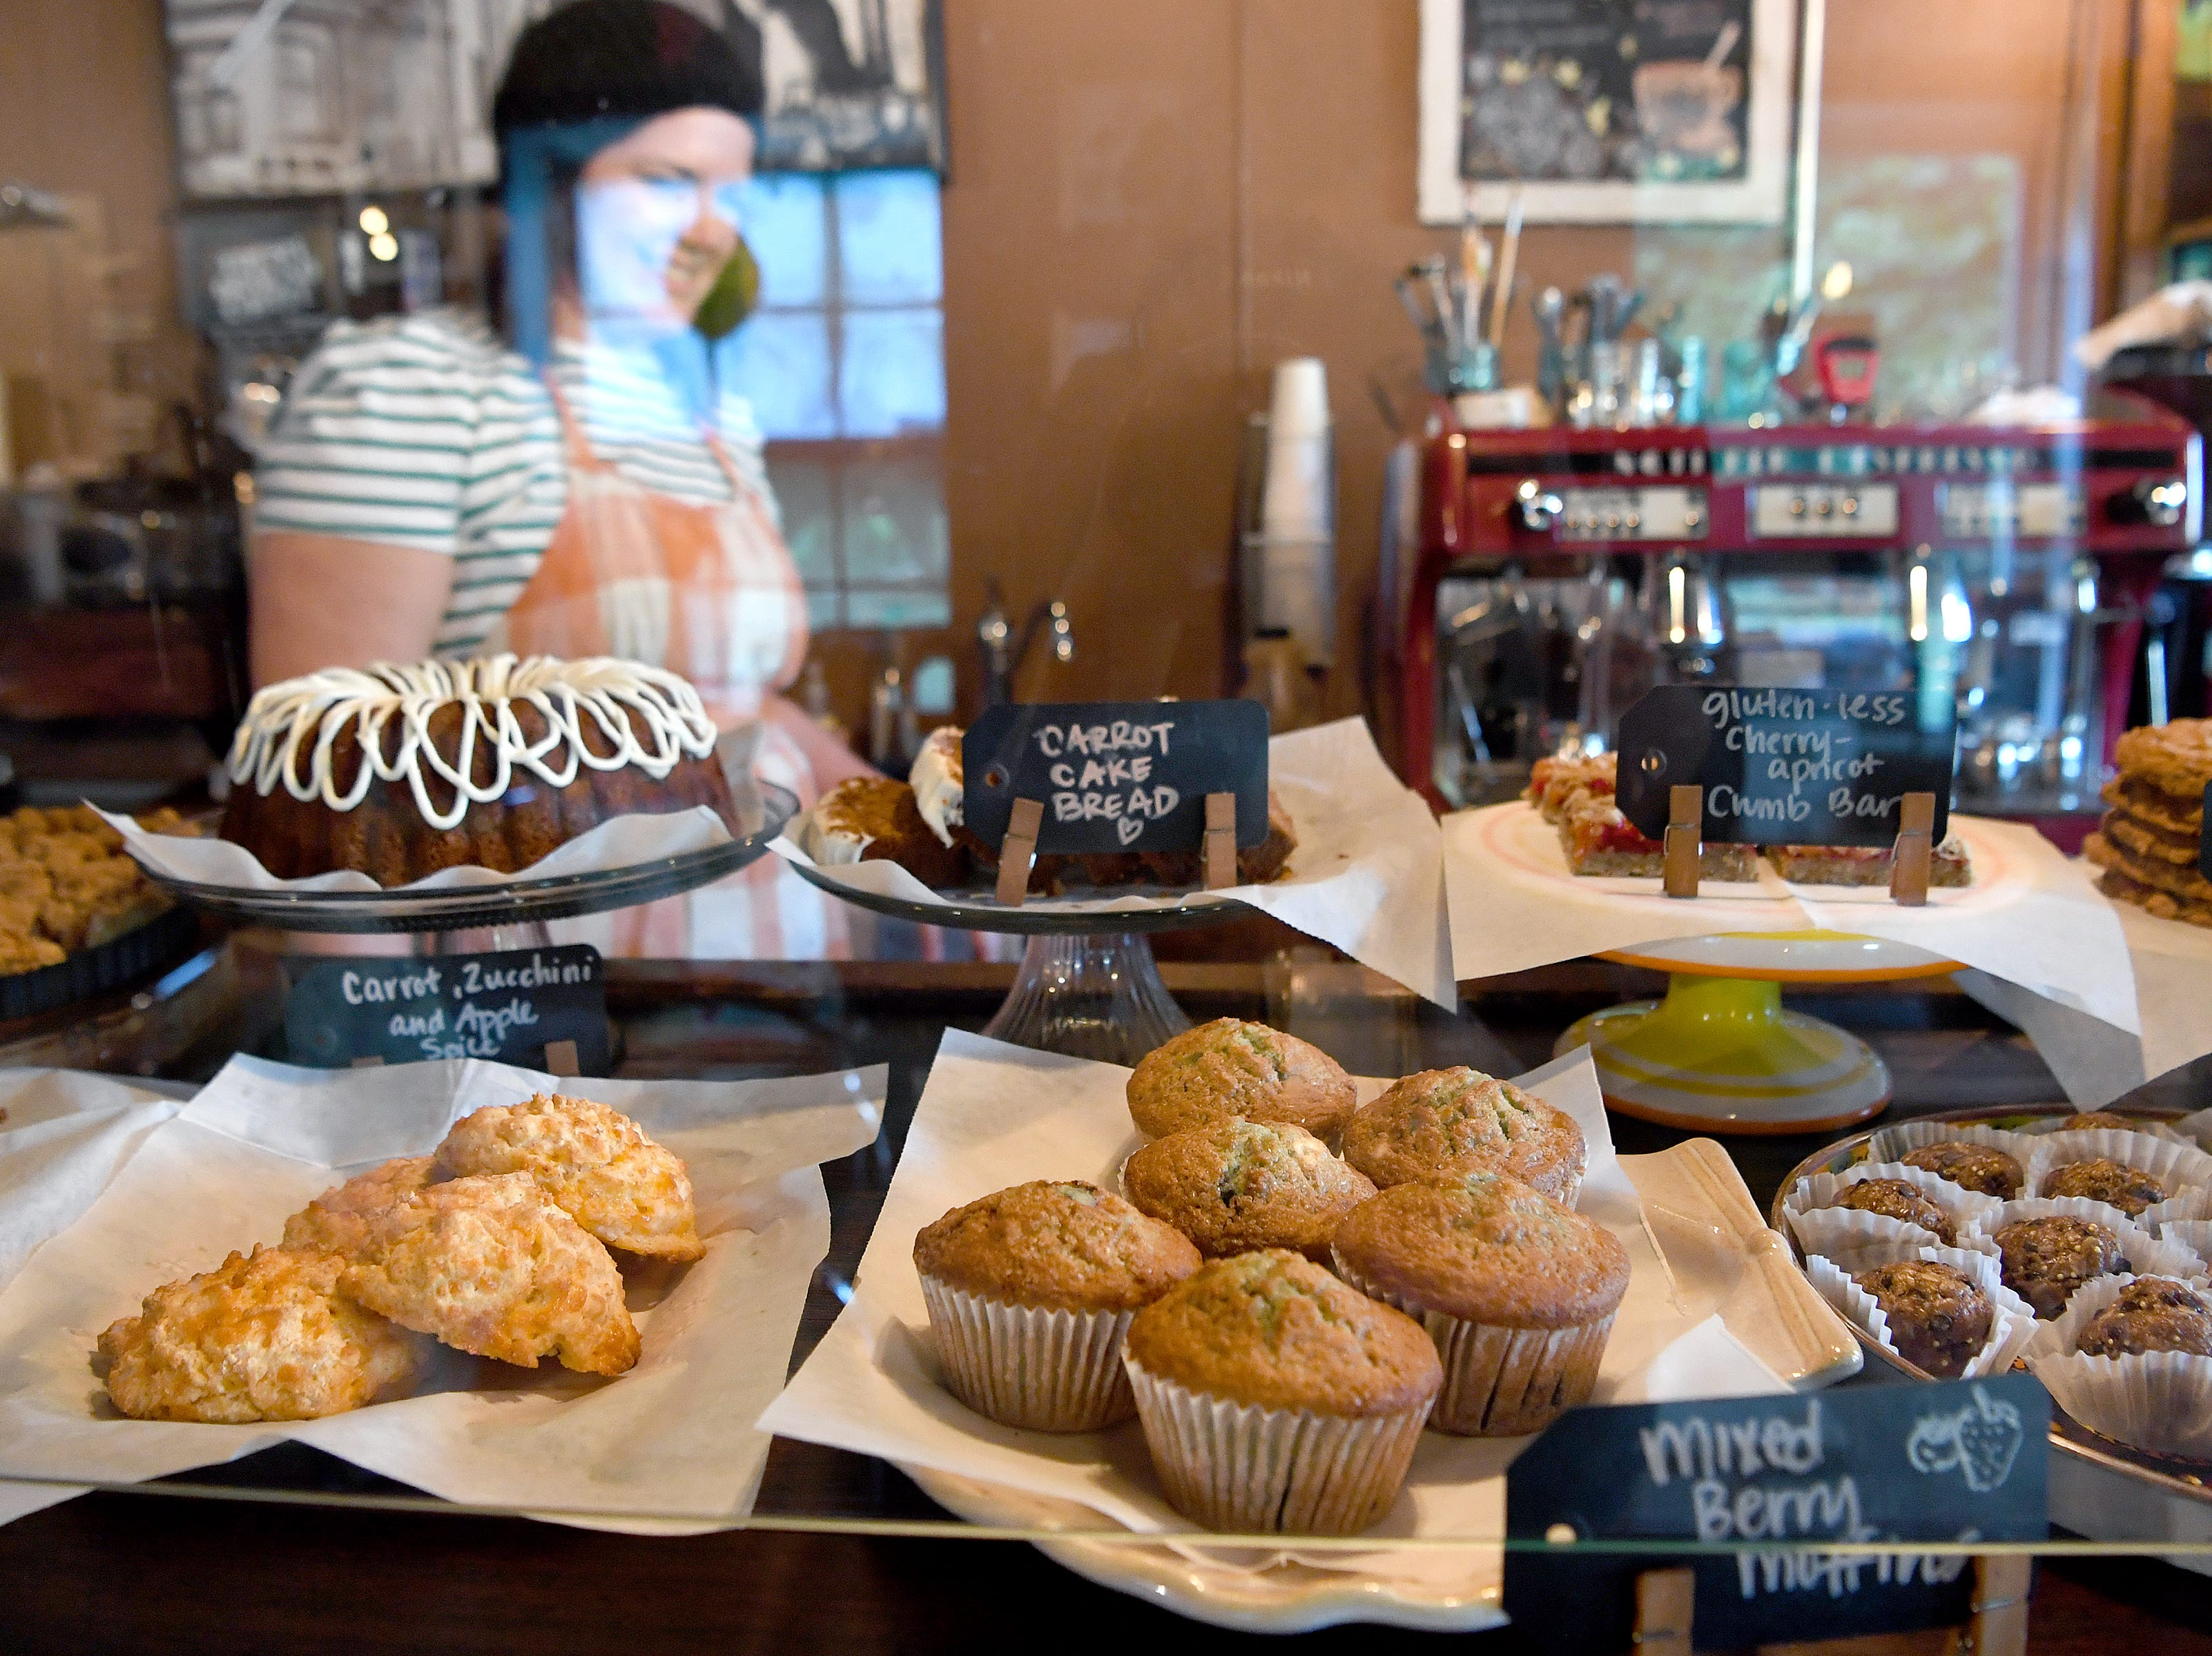 The Beehive Coffee Bar in Arden offers an array of house-made baked goods every day.